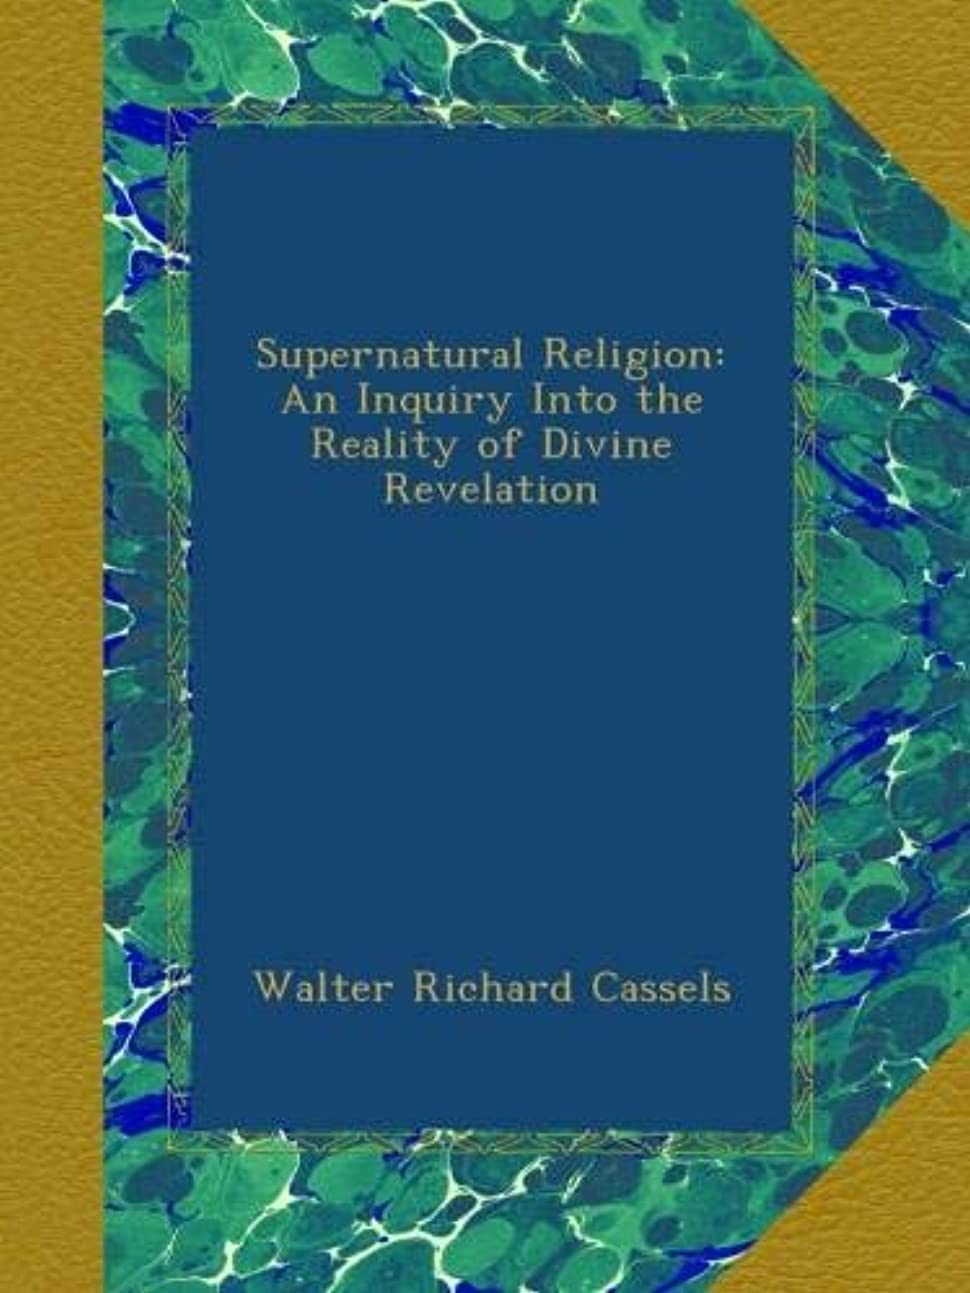 びっくりスチュワーデスくるくるSupernatural Religion: An Inquiry Into the Reality of Divine Revelation